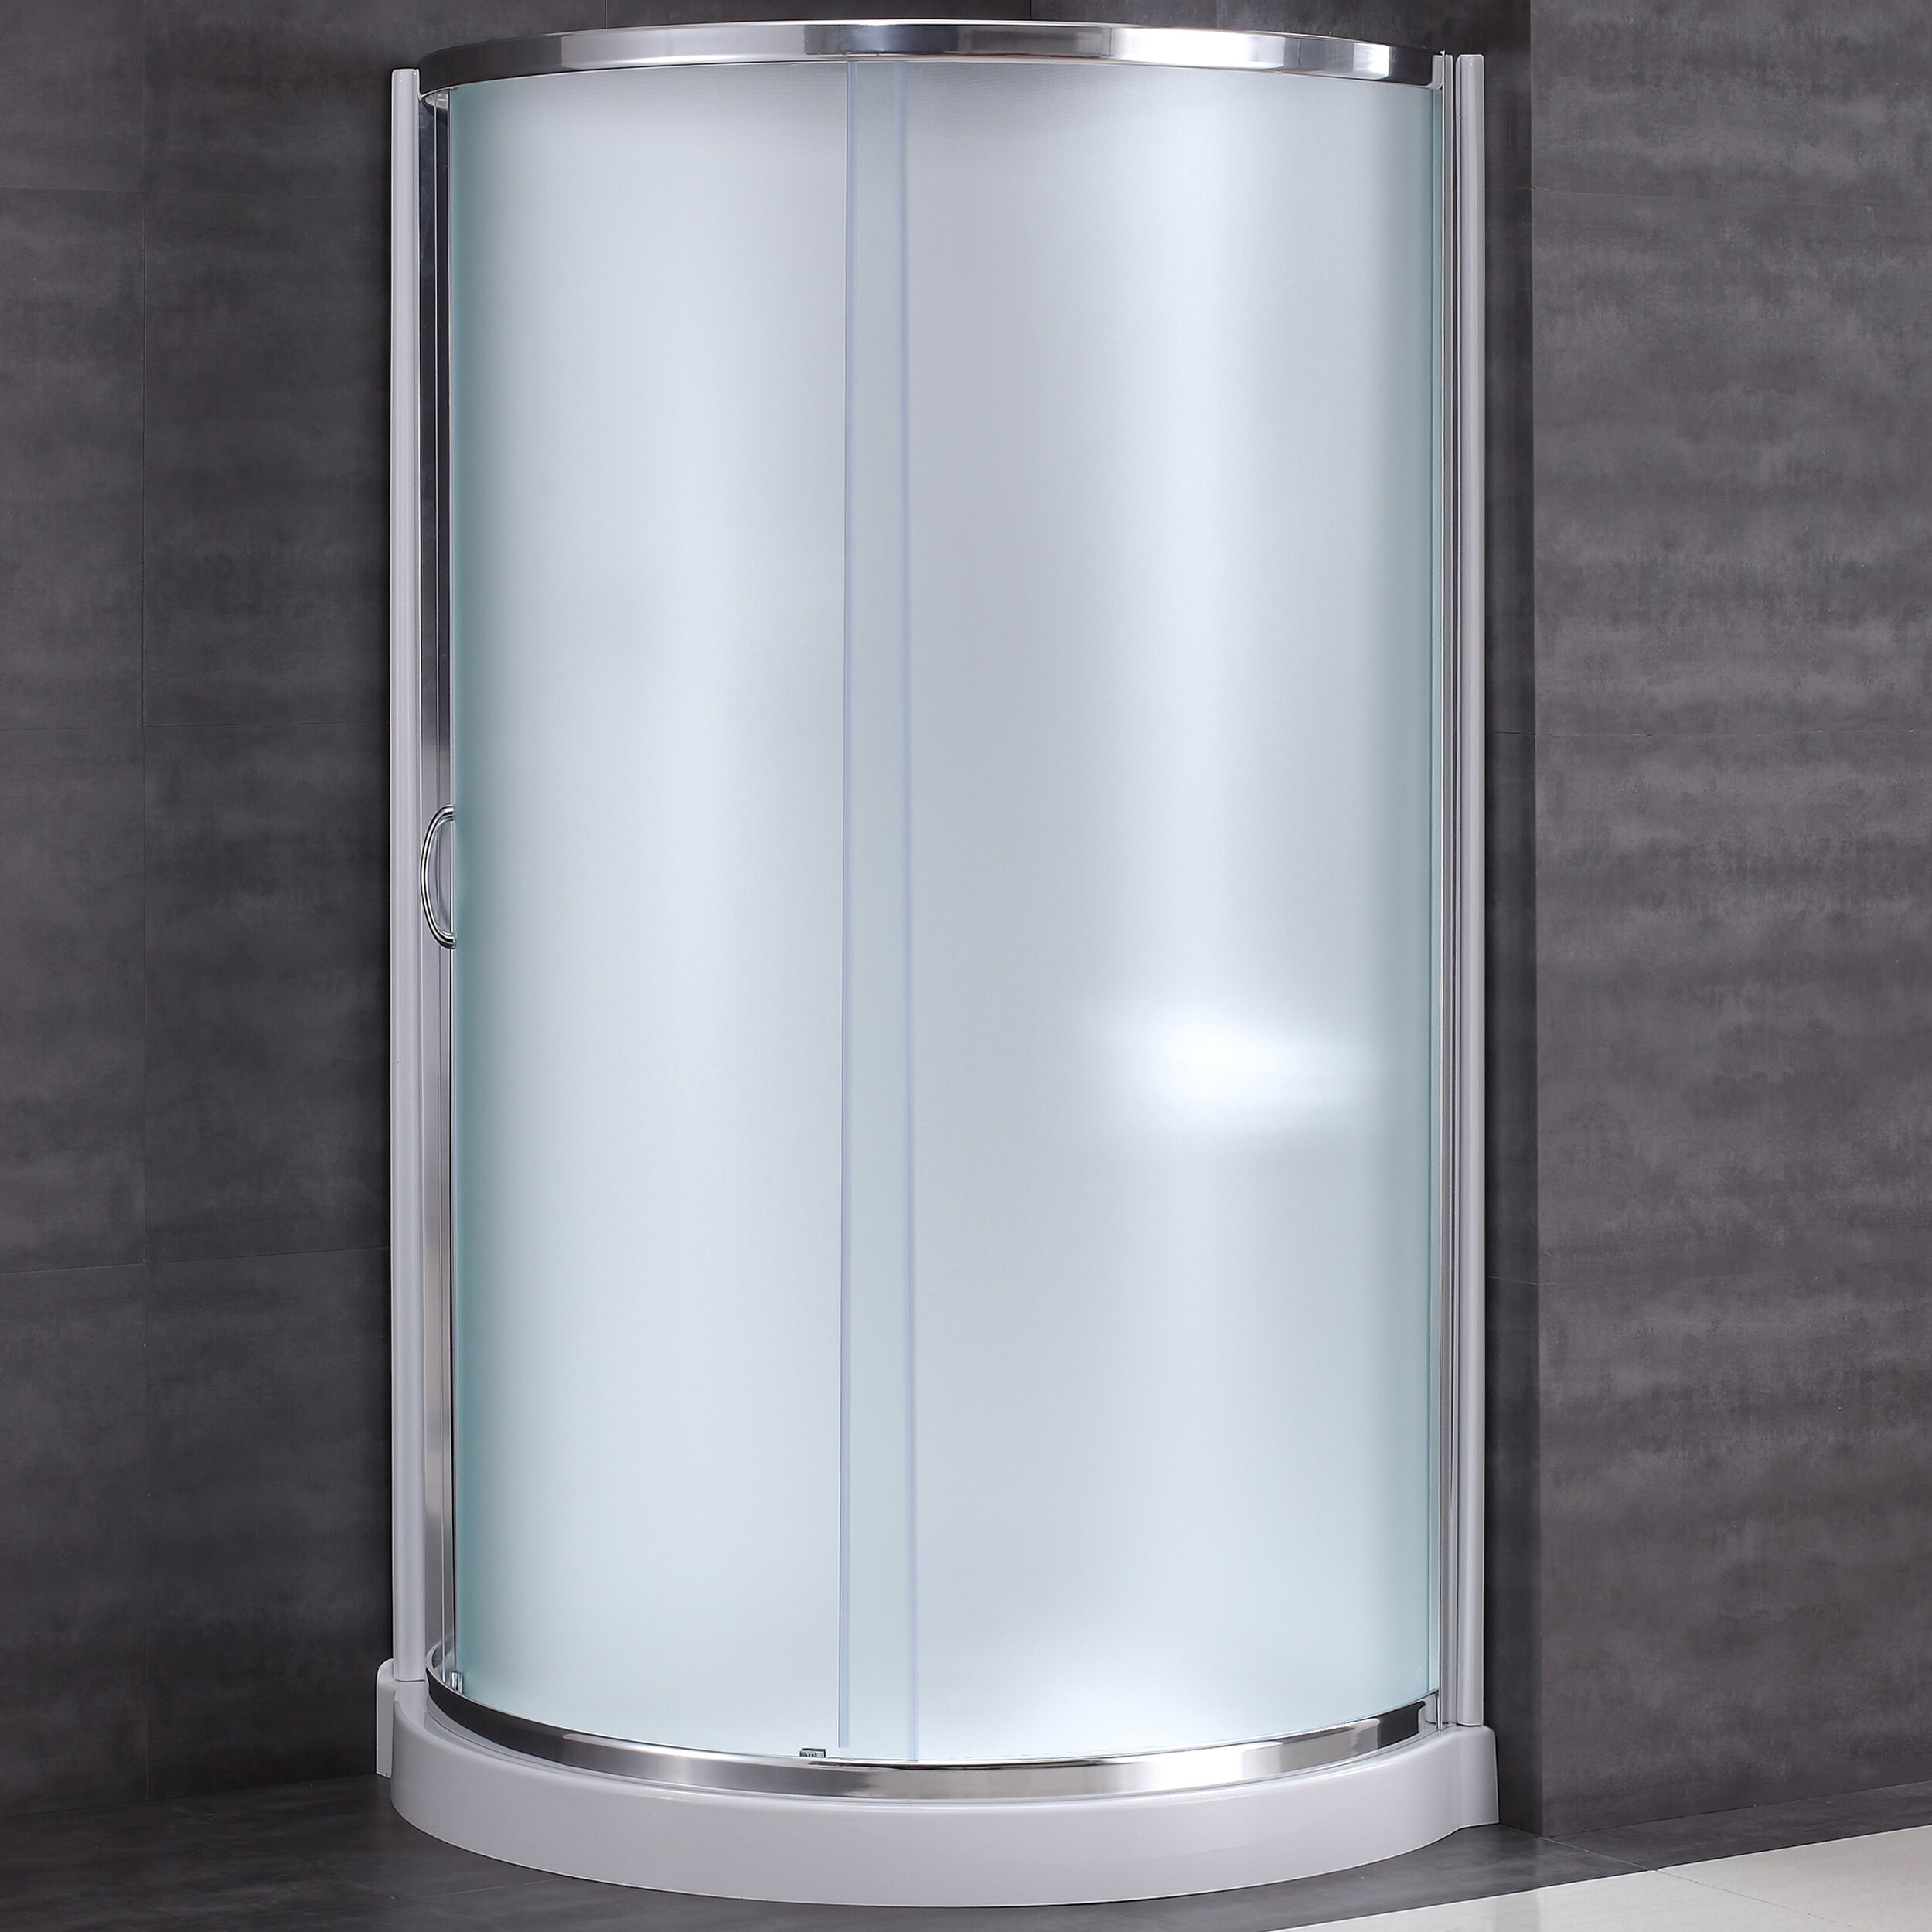 Ove Decors Shower Doors Ove Decors Breeze 38 X 38 X 76 Neo Angle Frosted Glass Kit